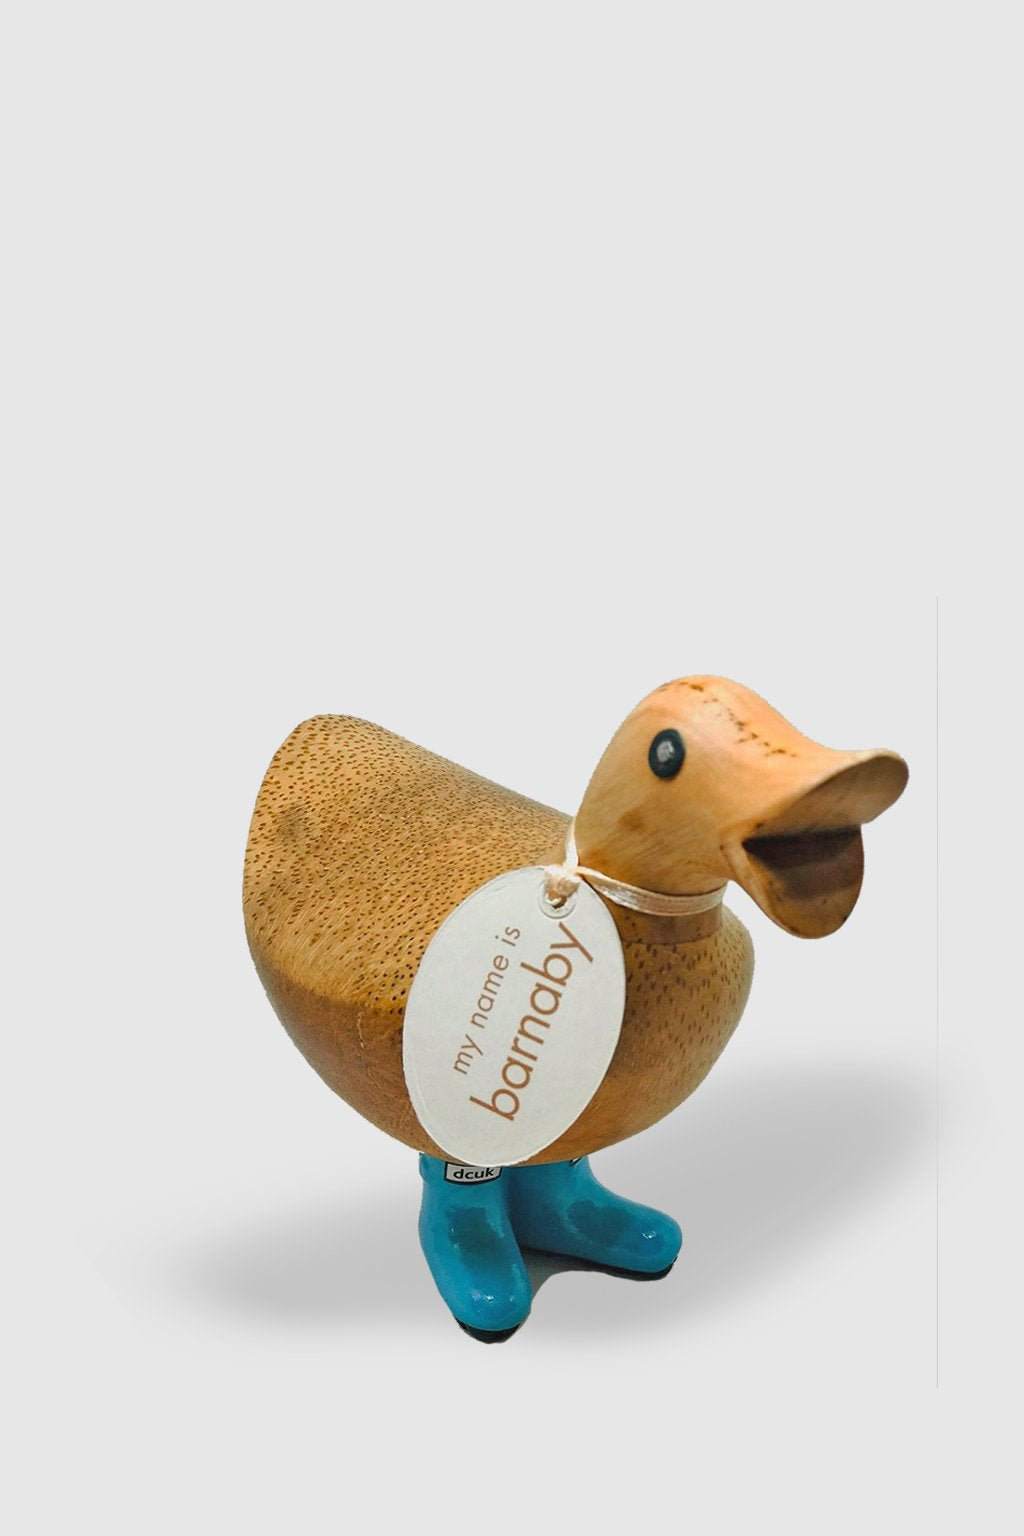 DCUK-Wellington Ducky - Barnaby-Mott and Mulberry